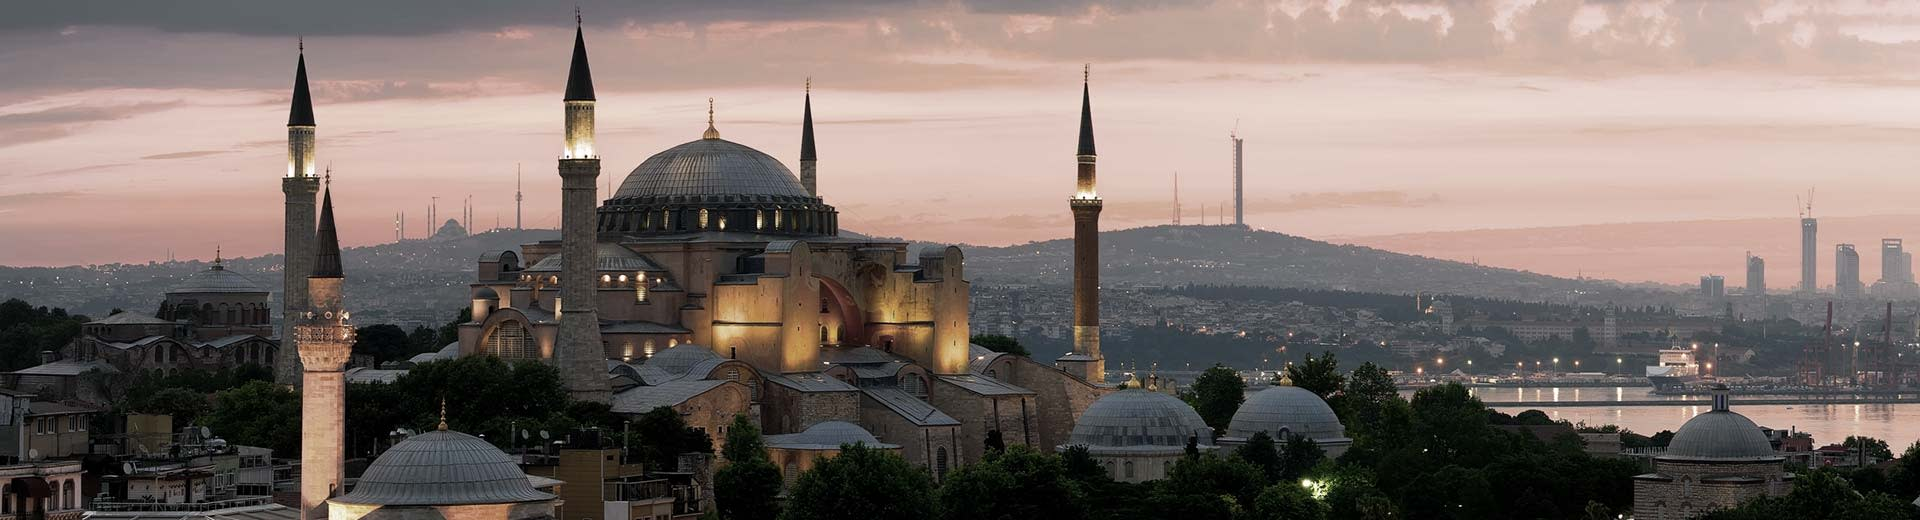 A Mosque silhouetted against the setting sun in Istanbul